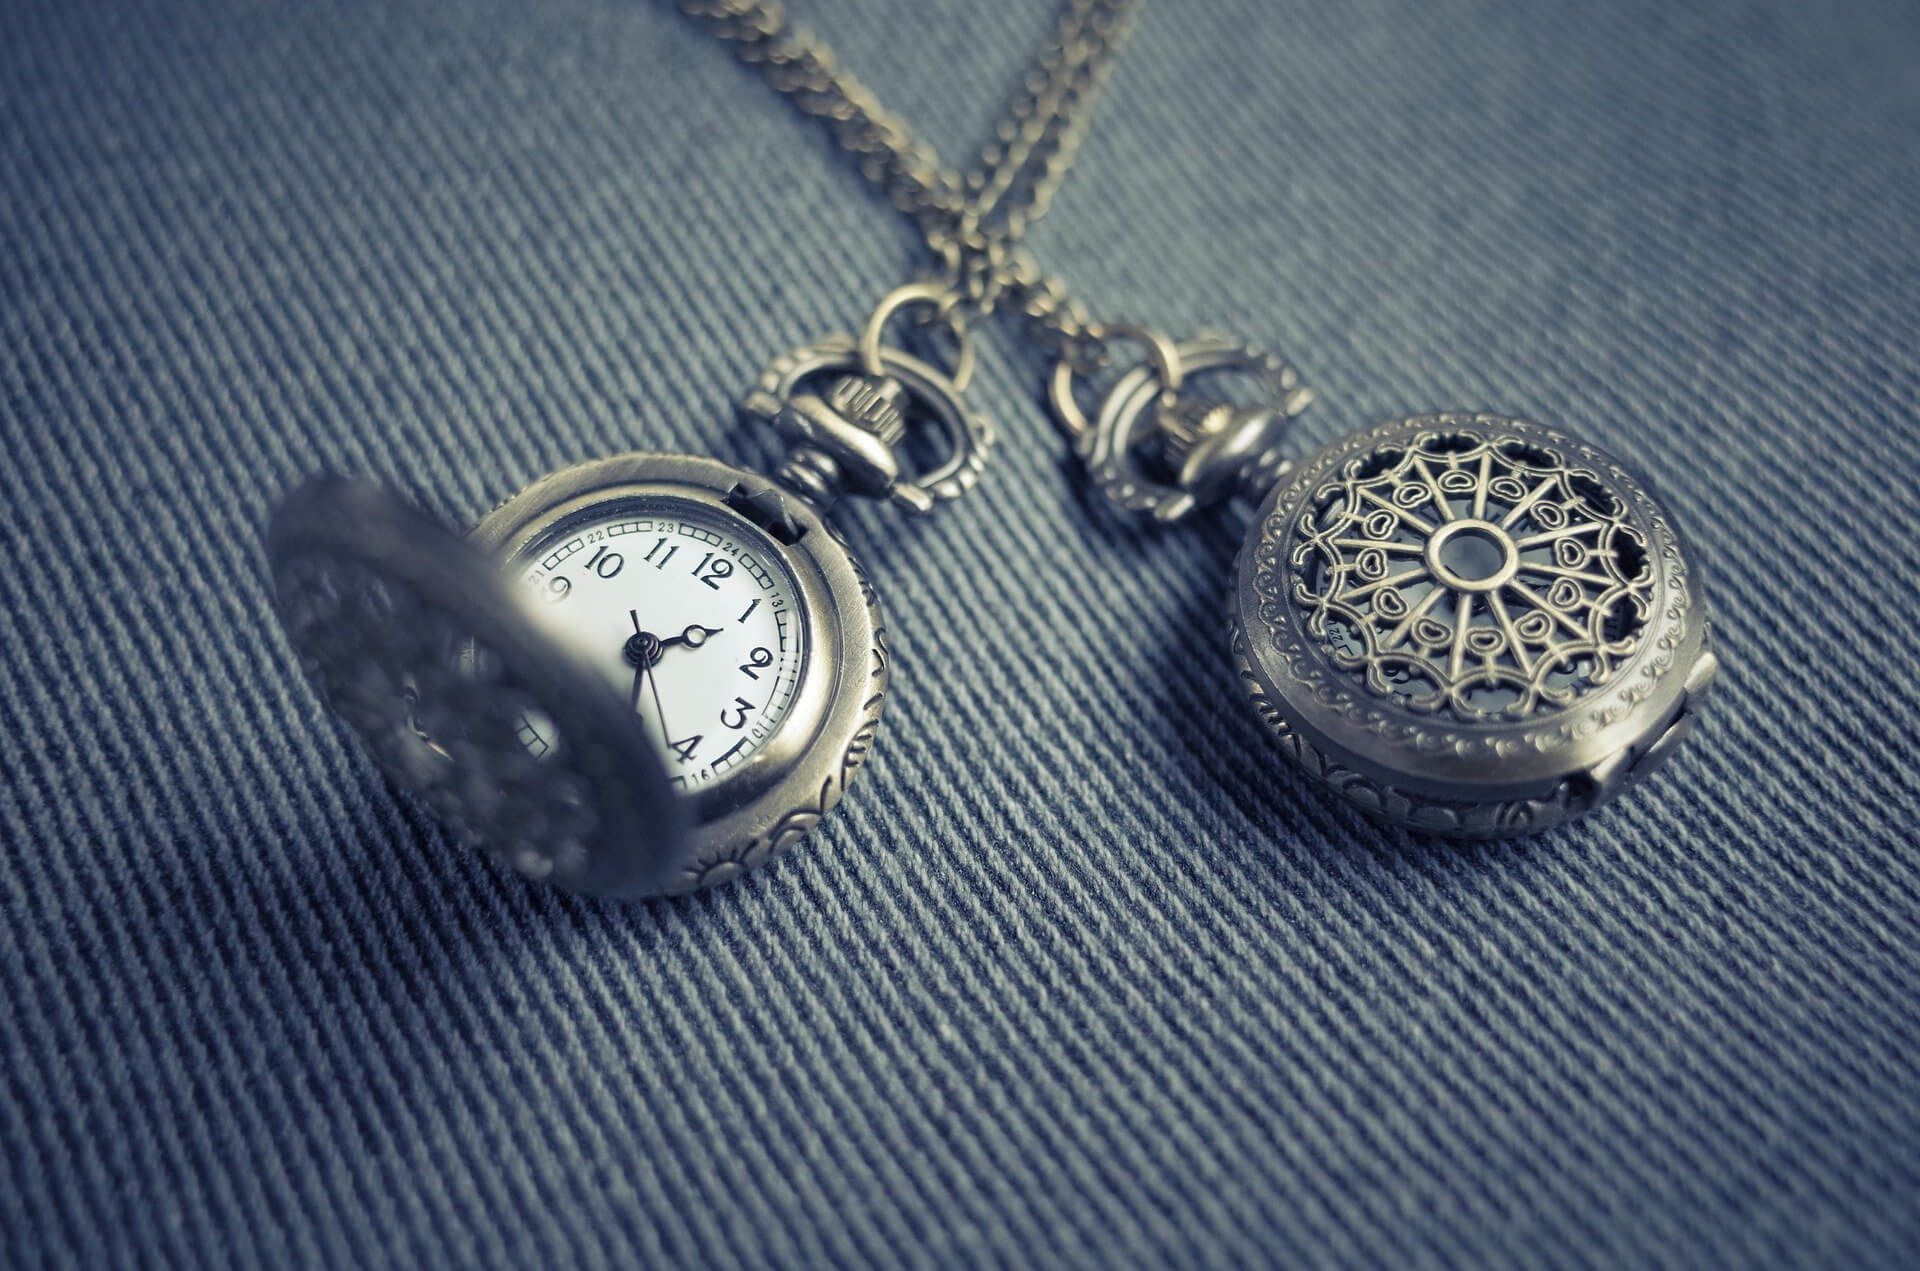 pocket-watch-2569573_1920 (1)